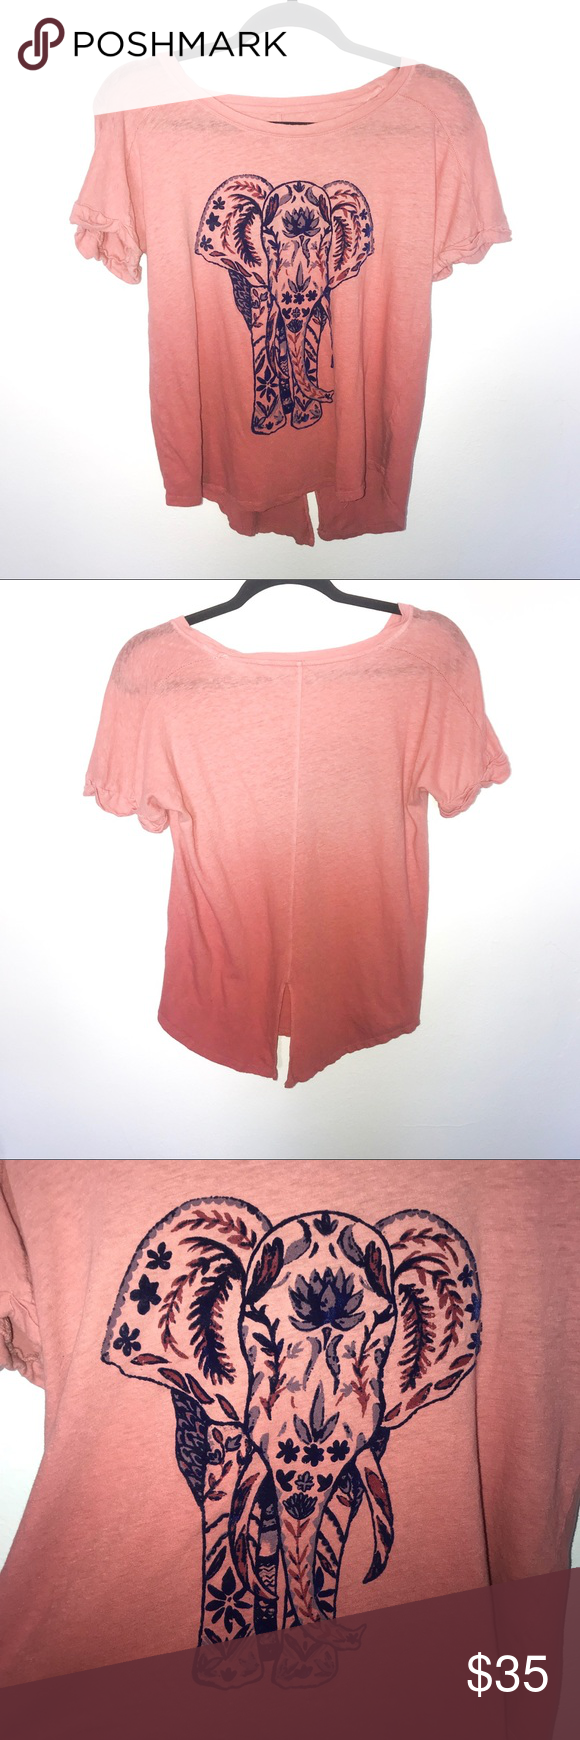 Lucky brand ombré embroidered elephant tee in my posh picks